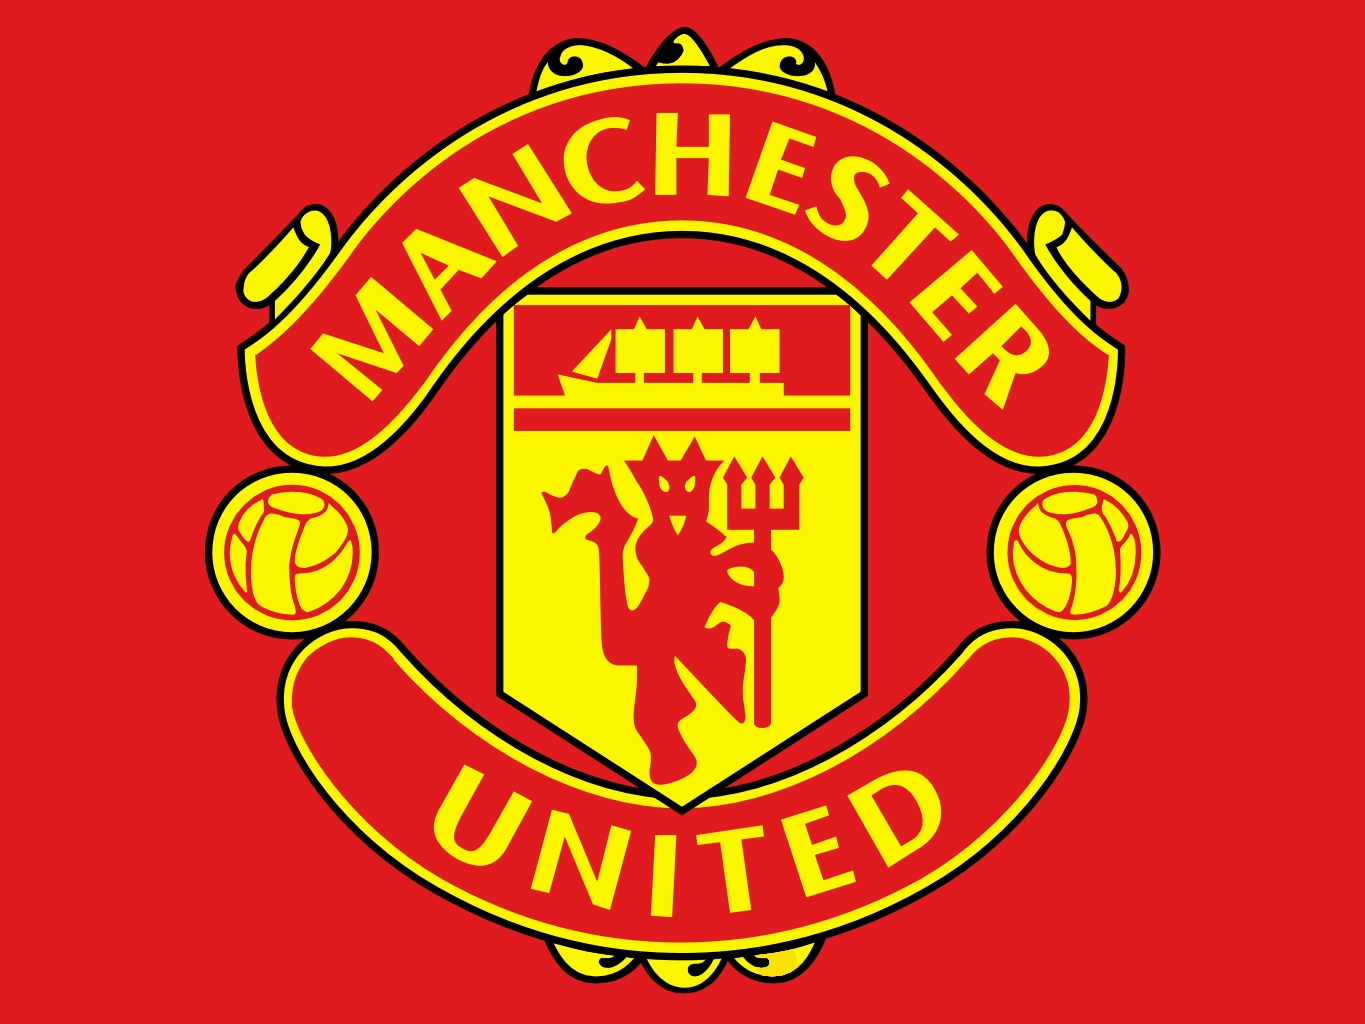 Images Of Manchester United Logo -  http://manchesterunitedwallpapers clipartlook.com/images-